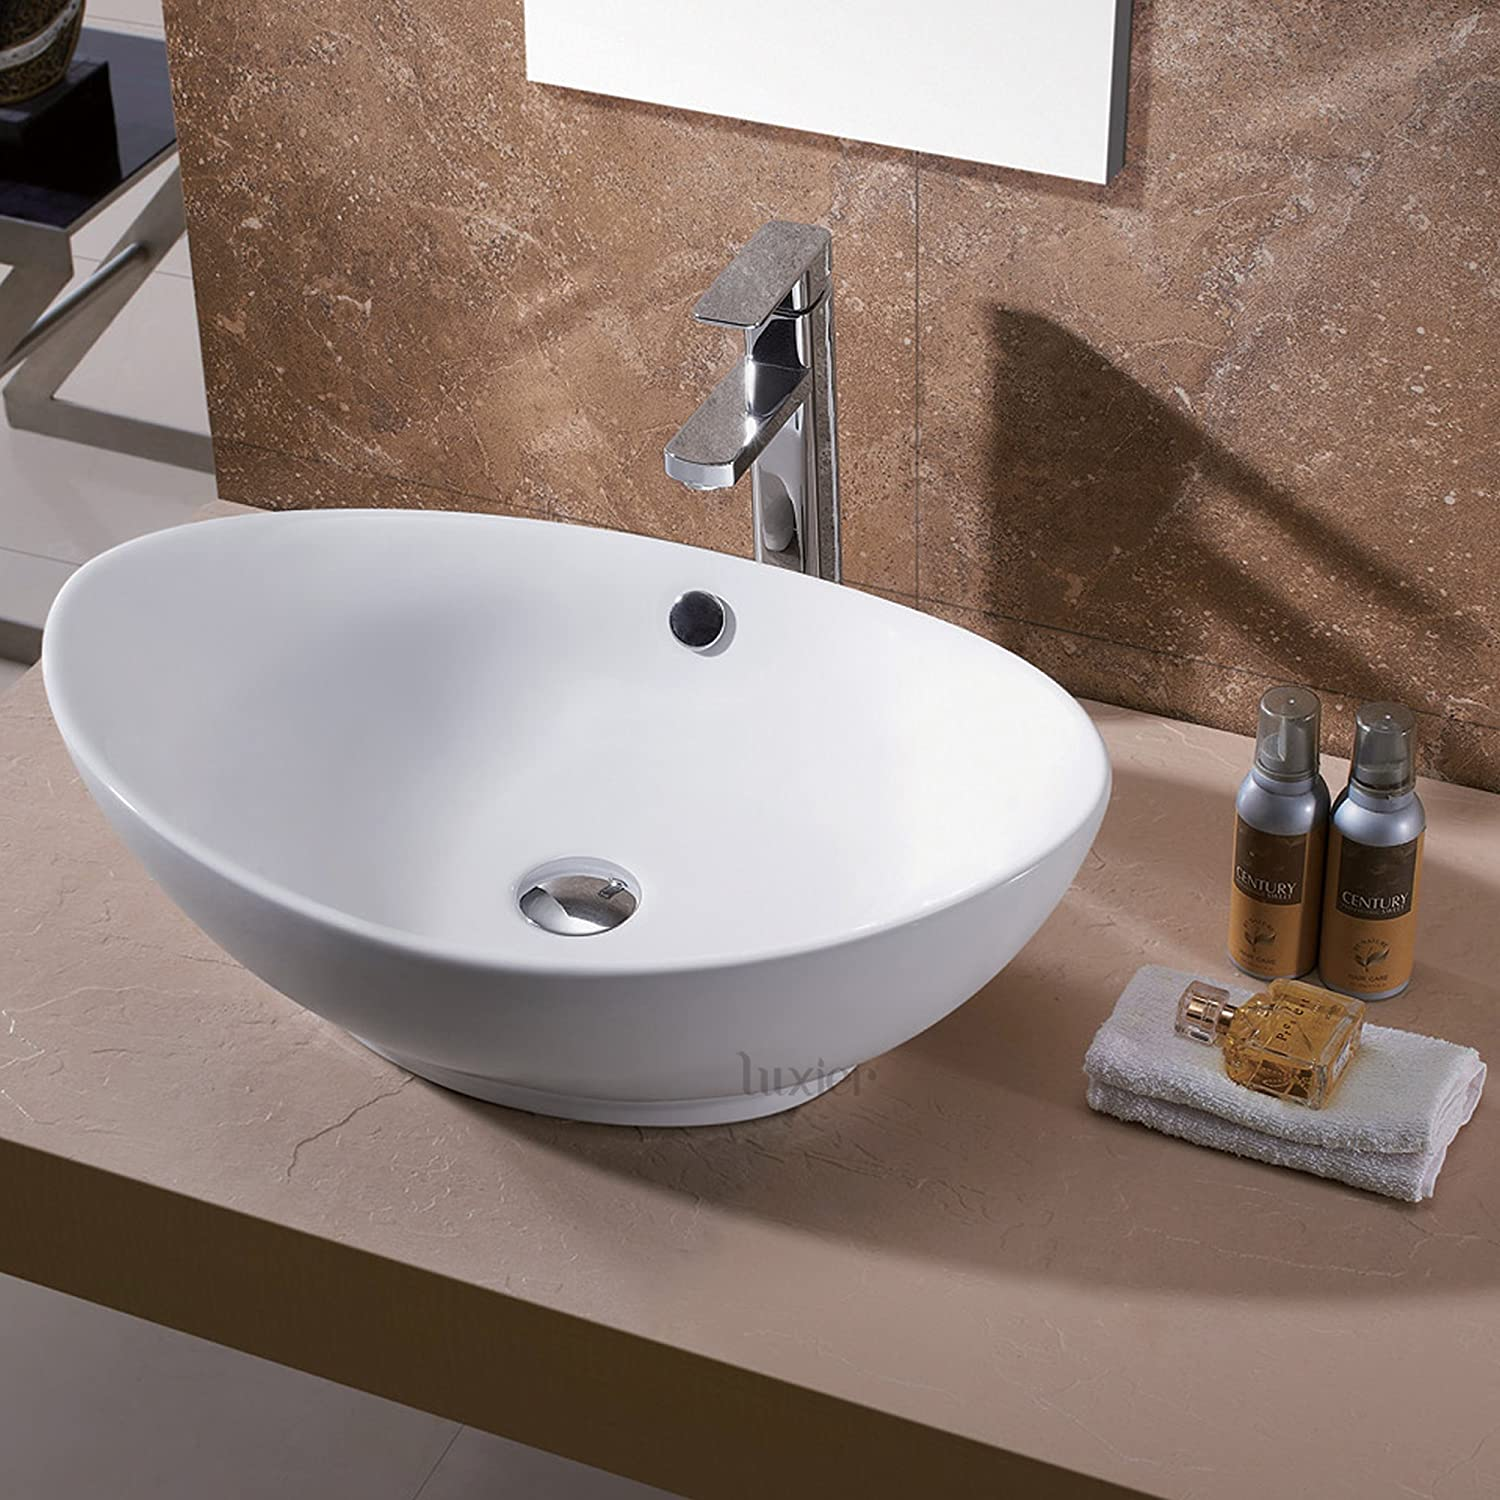 Bathroom Sink Dreamy Person Beautiful Vessel Bathroom Sinks